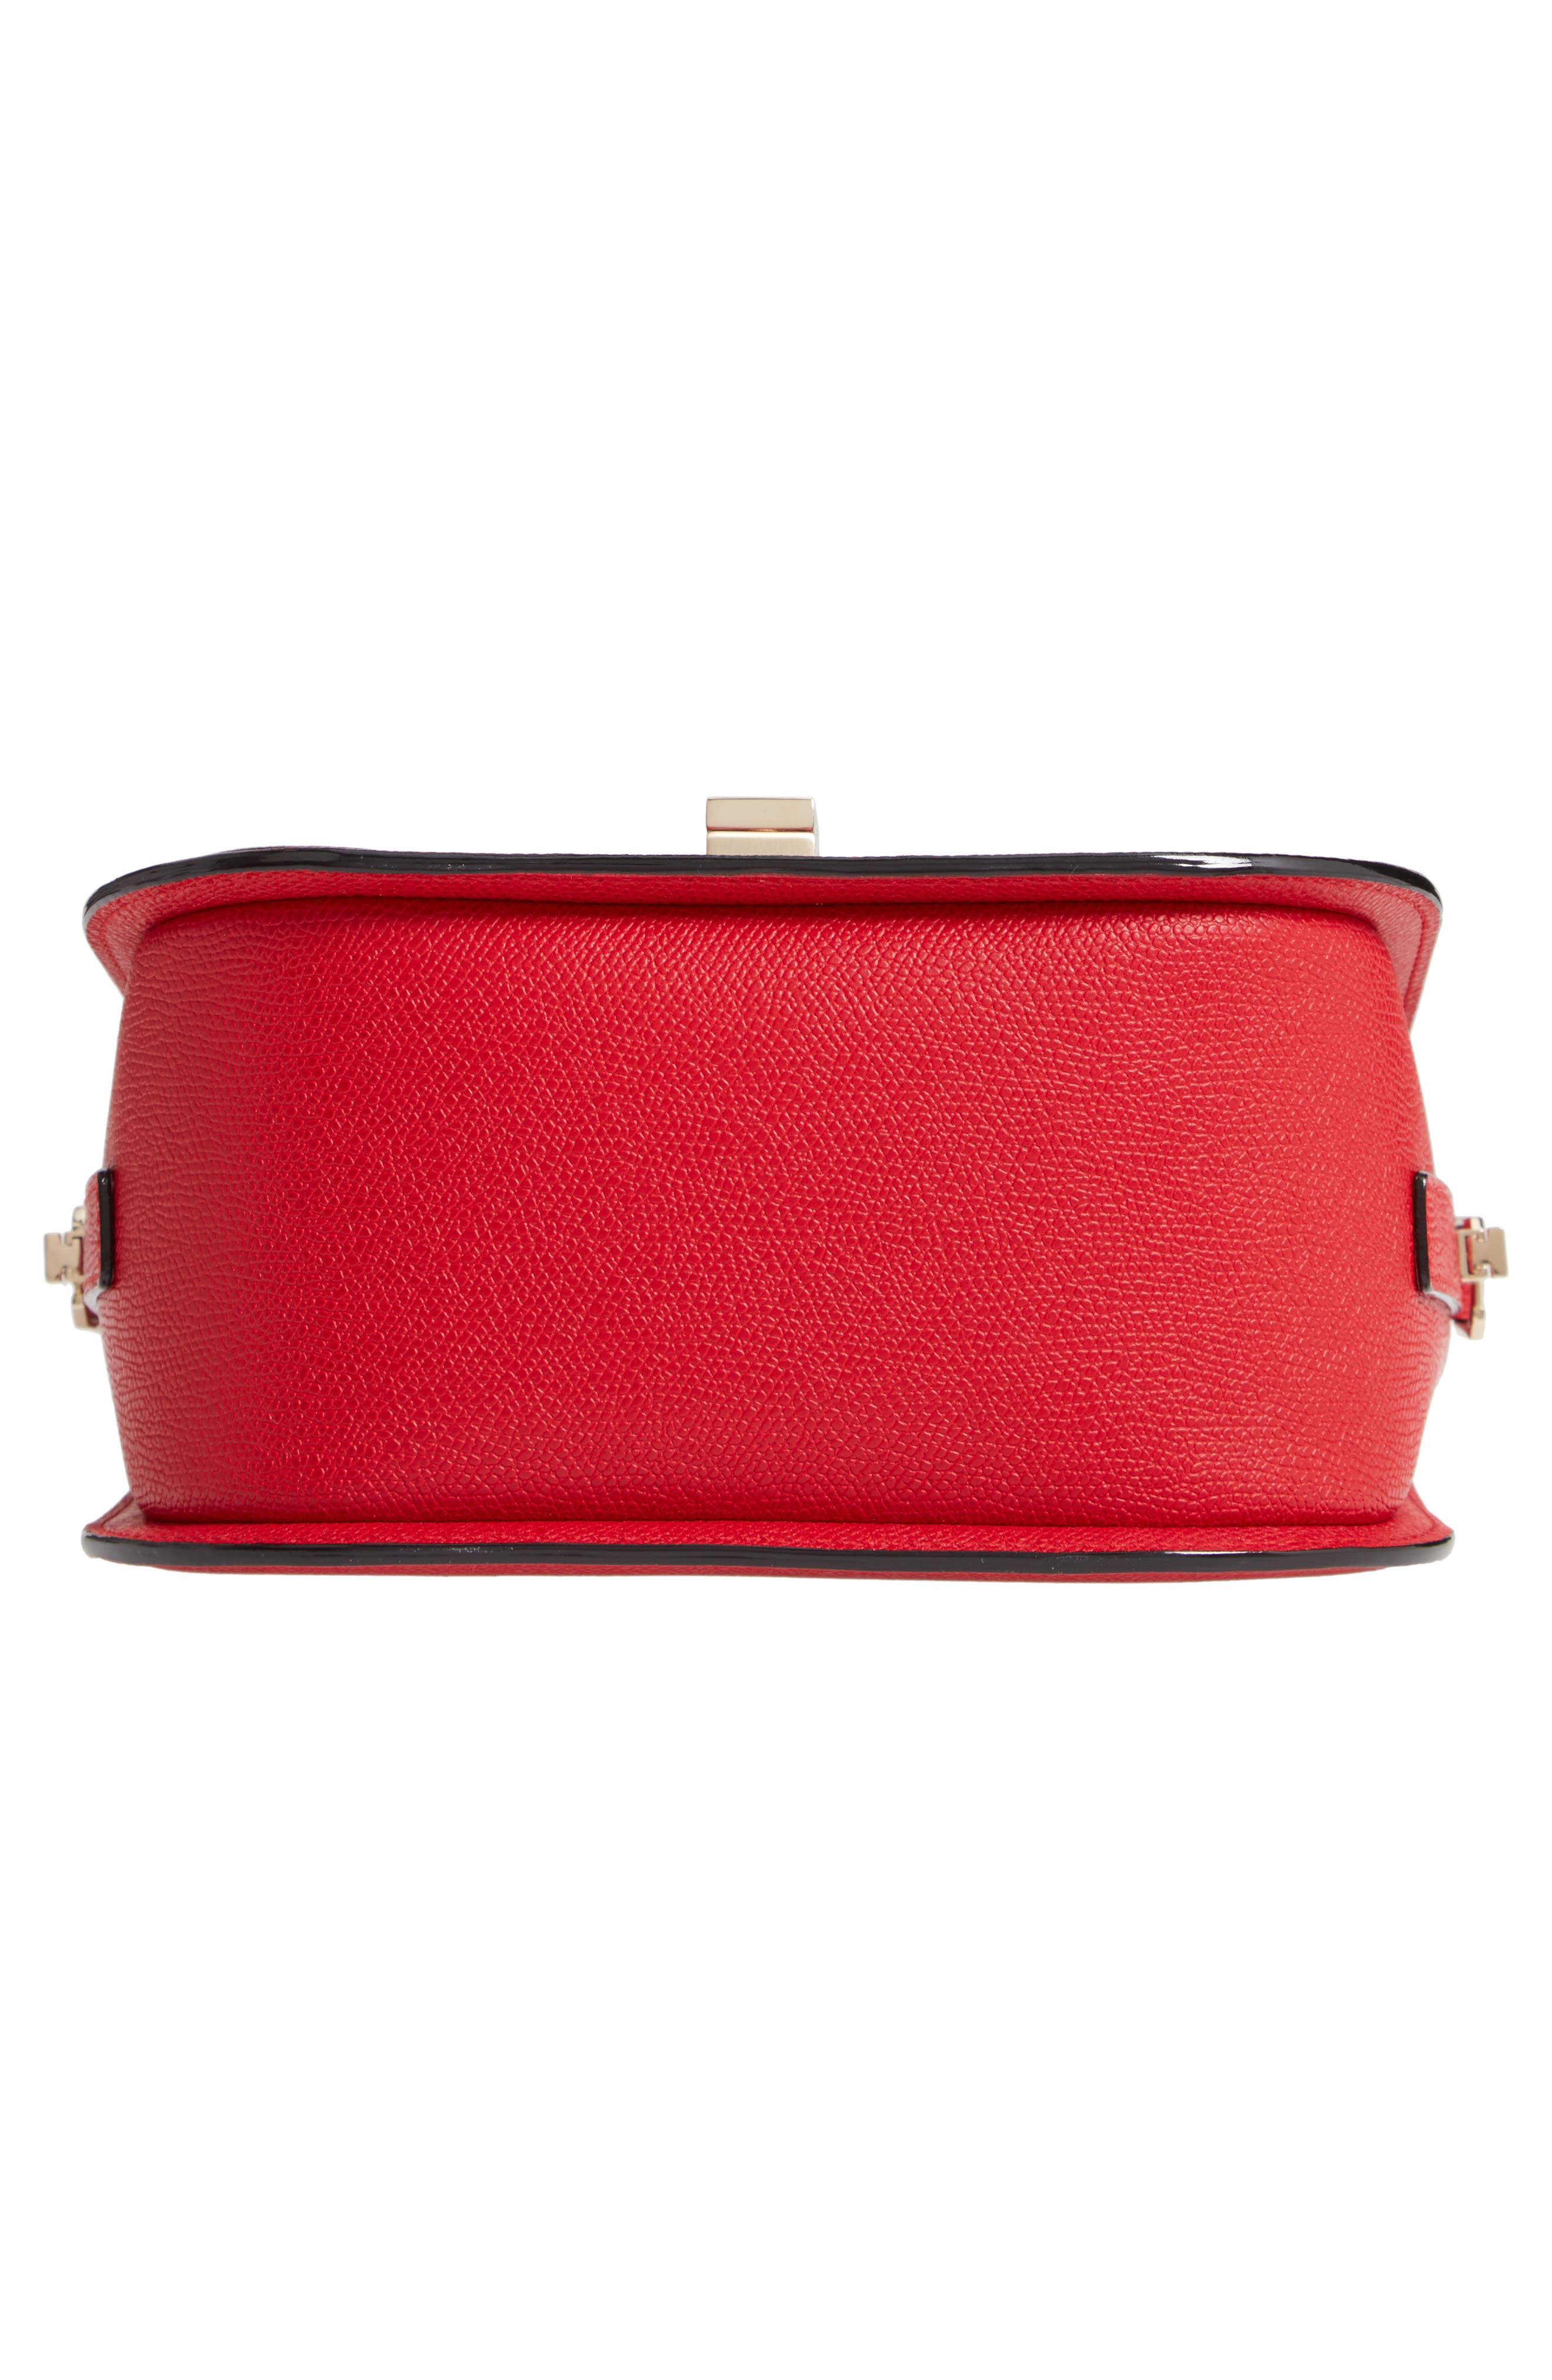 Iside Leather Top Handle Bag,                             Alternate thumbnail 6, color,                             RED